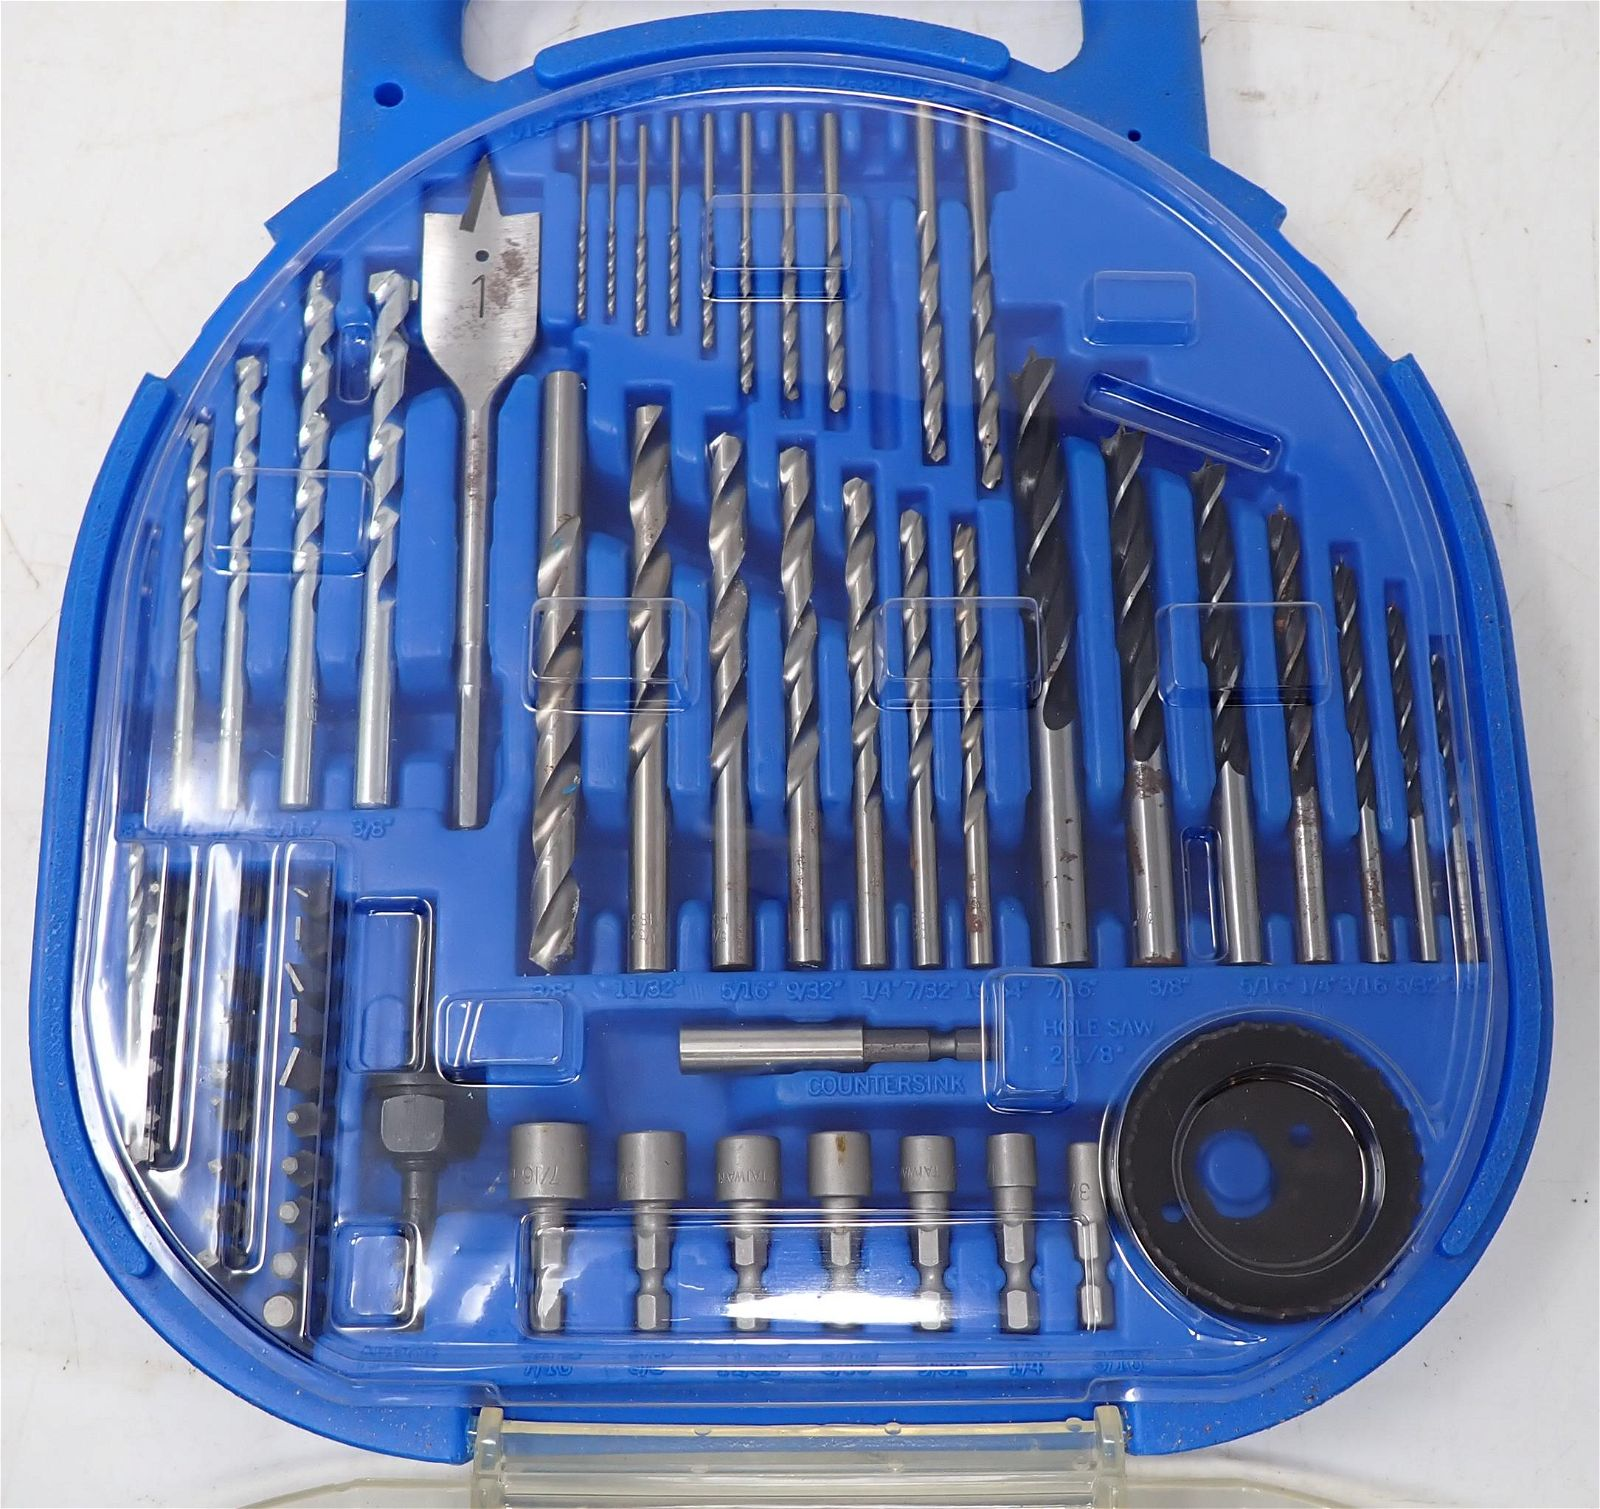 2 Sets of Drill Bits and Drivers